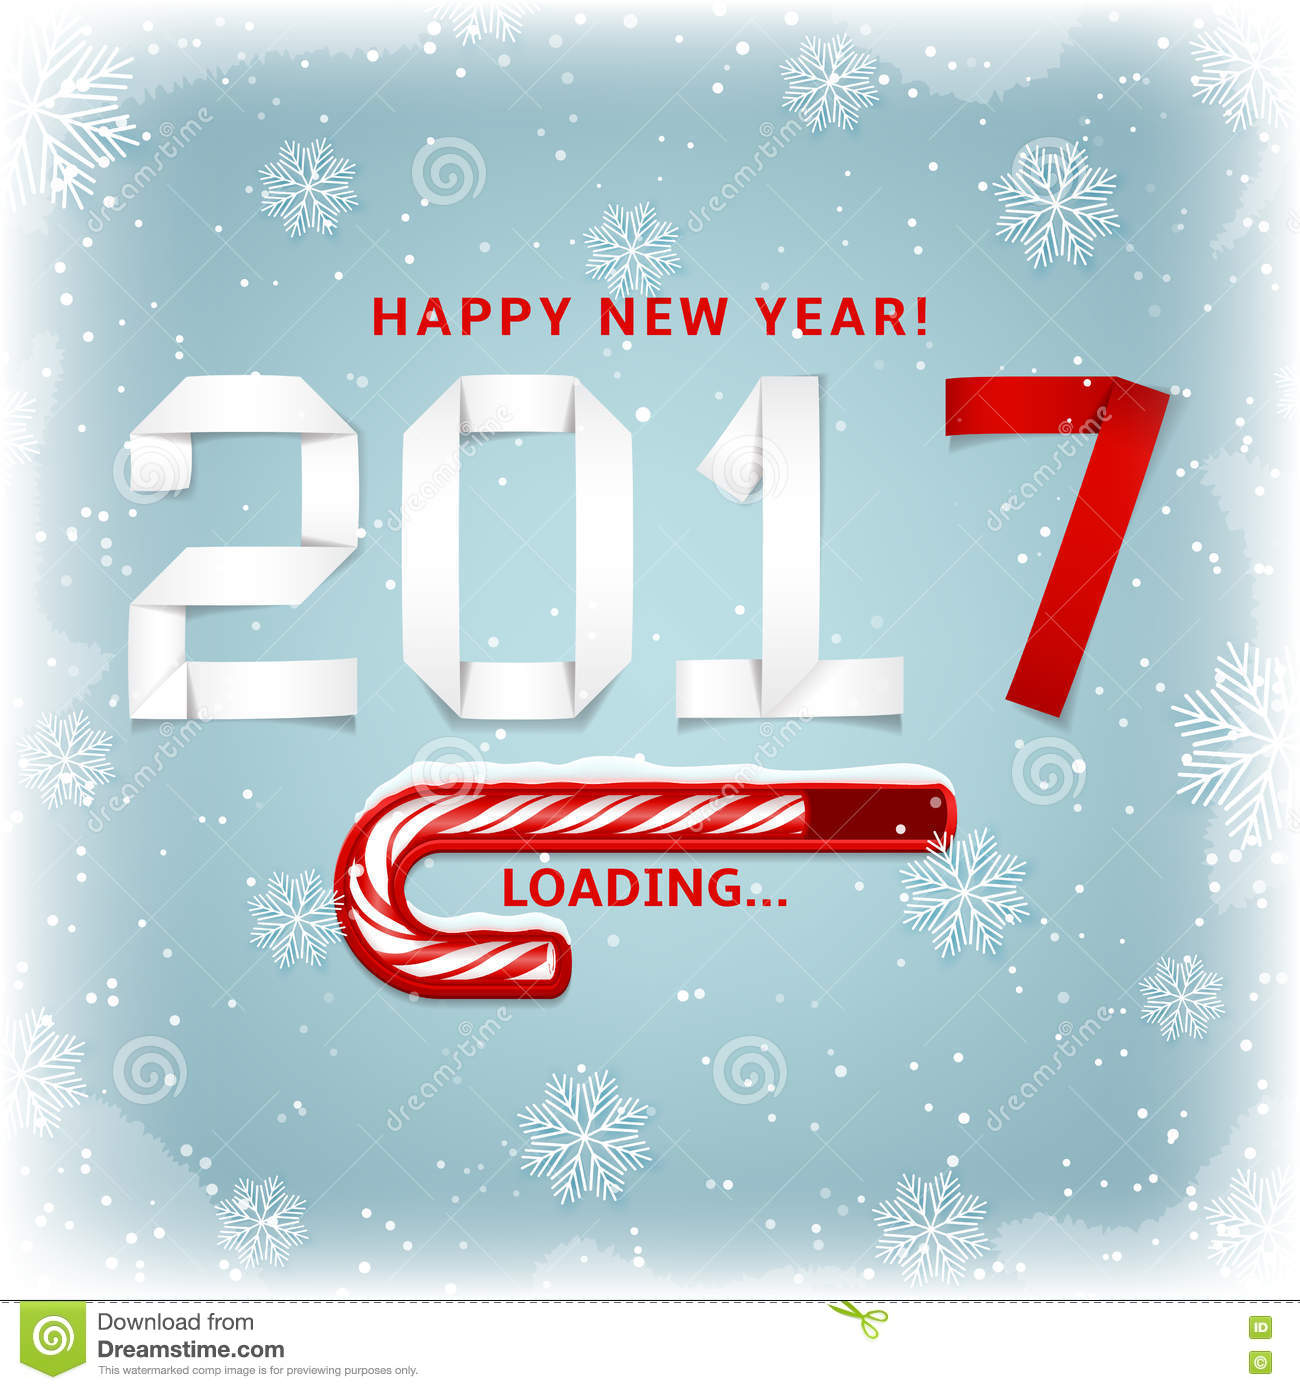 Happy New Year Gift Card Stock Vector Illustration Of Poster 79568637